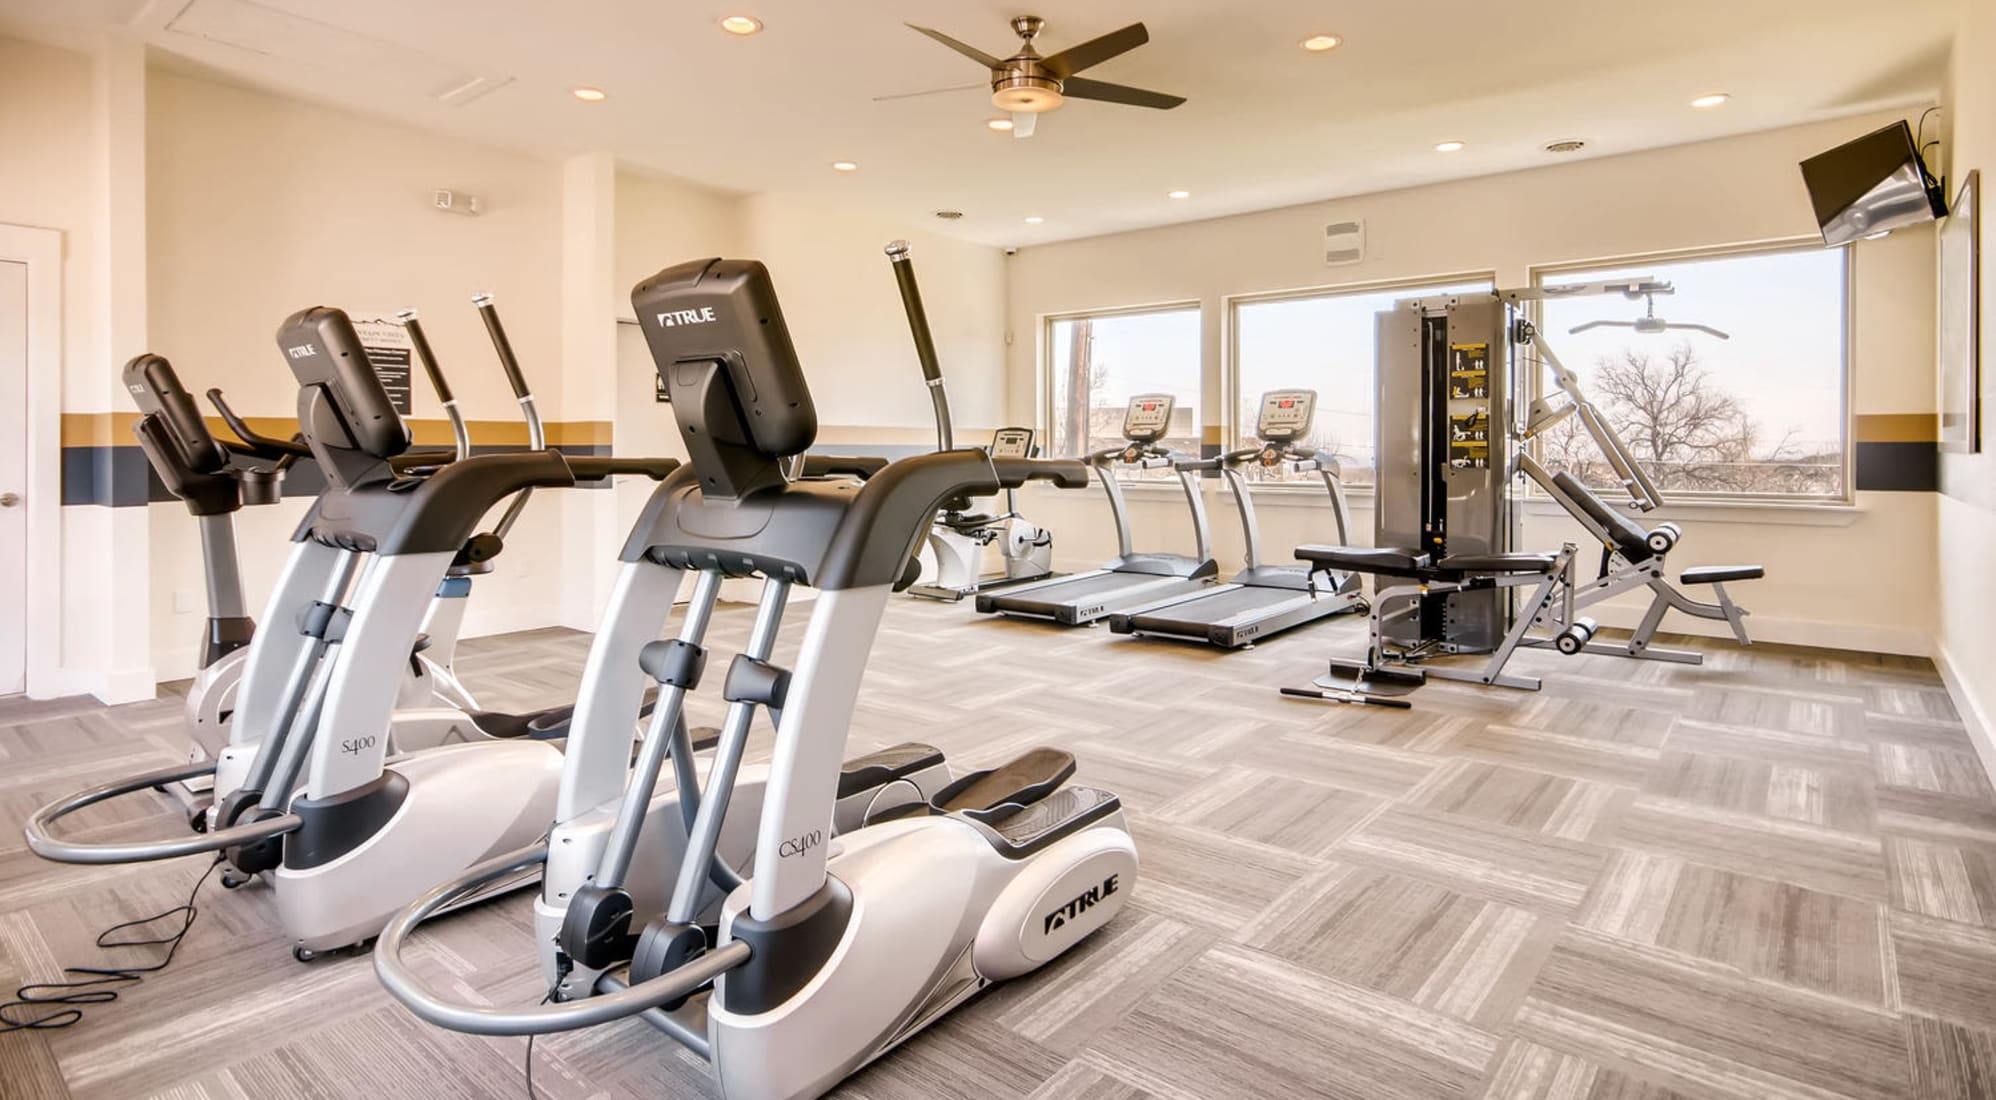 Fitness area at Mountain Vista in Lakewood, Colorado